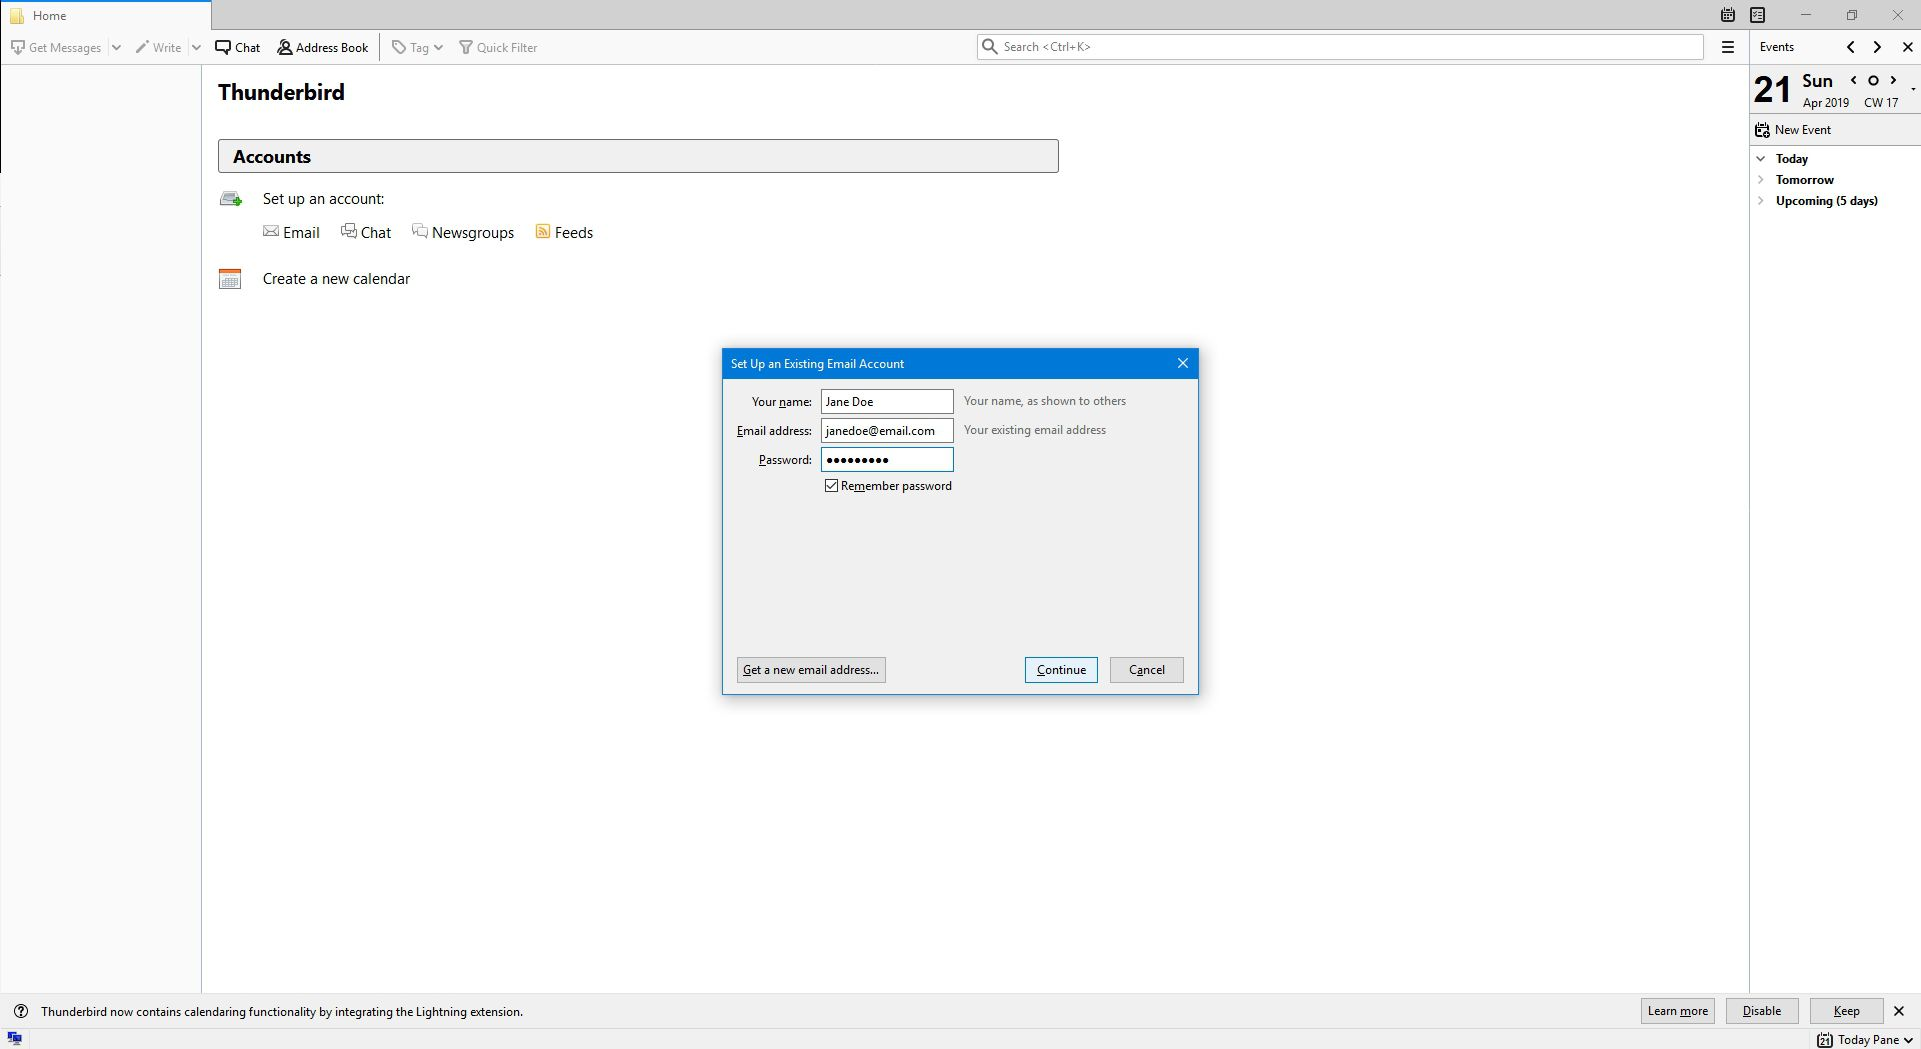 Entering in email details for a new account setup in Thunderbird.